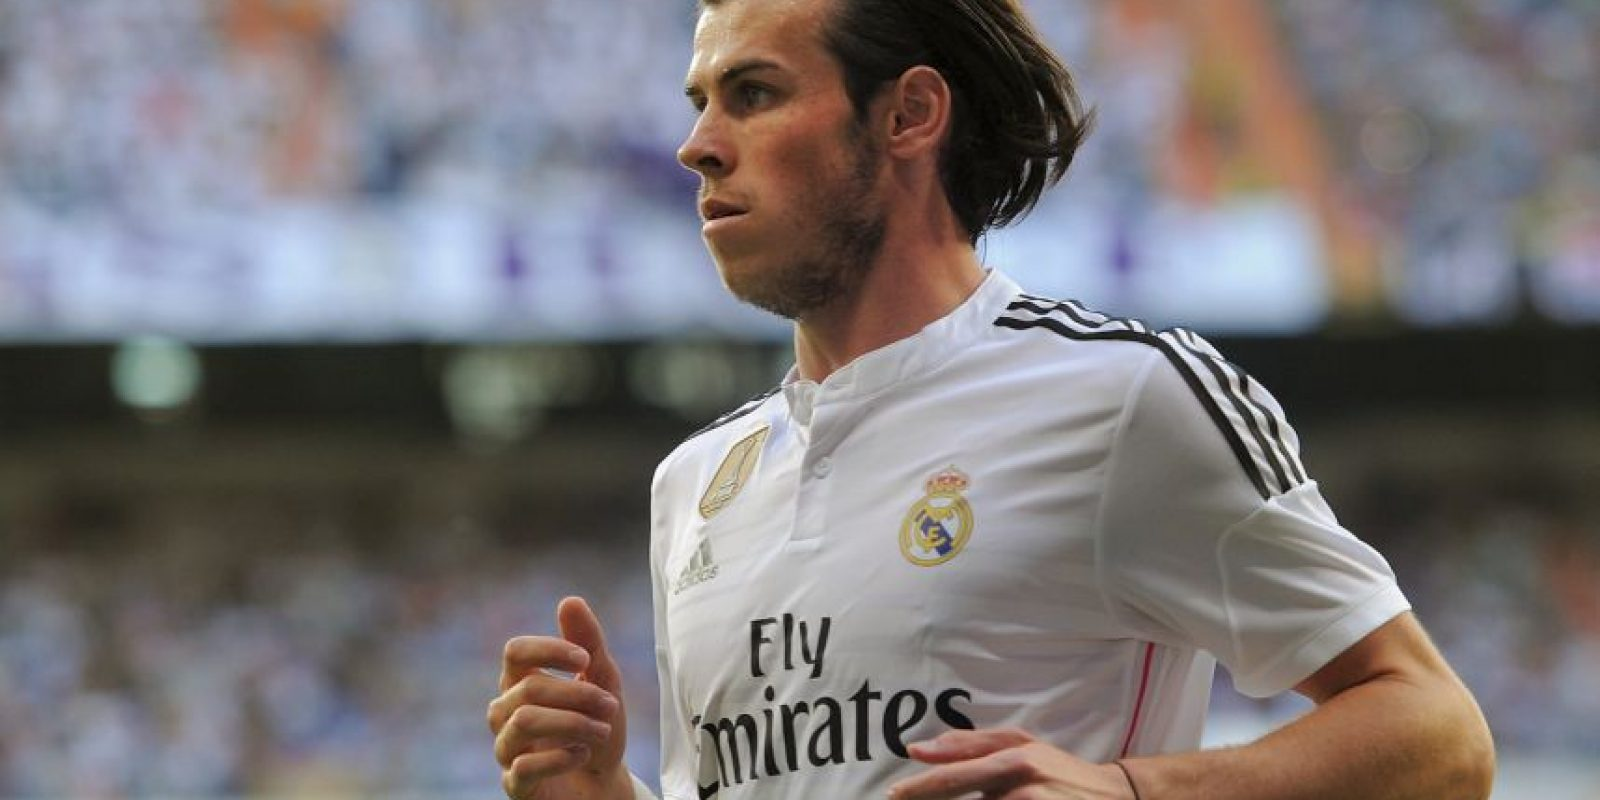 Gareth Bale (Real Madrid) Foto:Getty Images